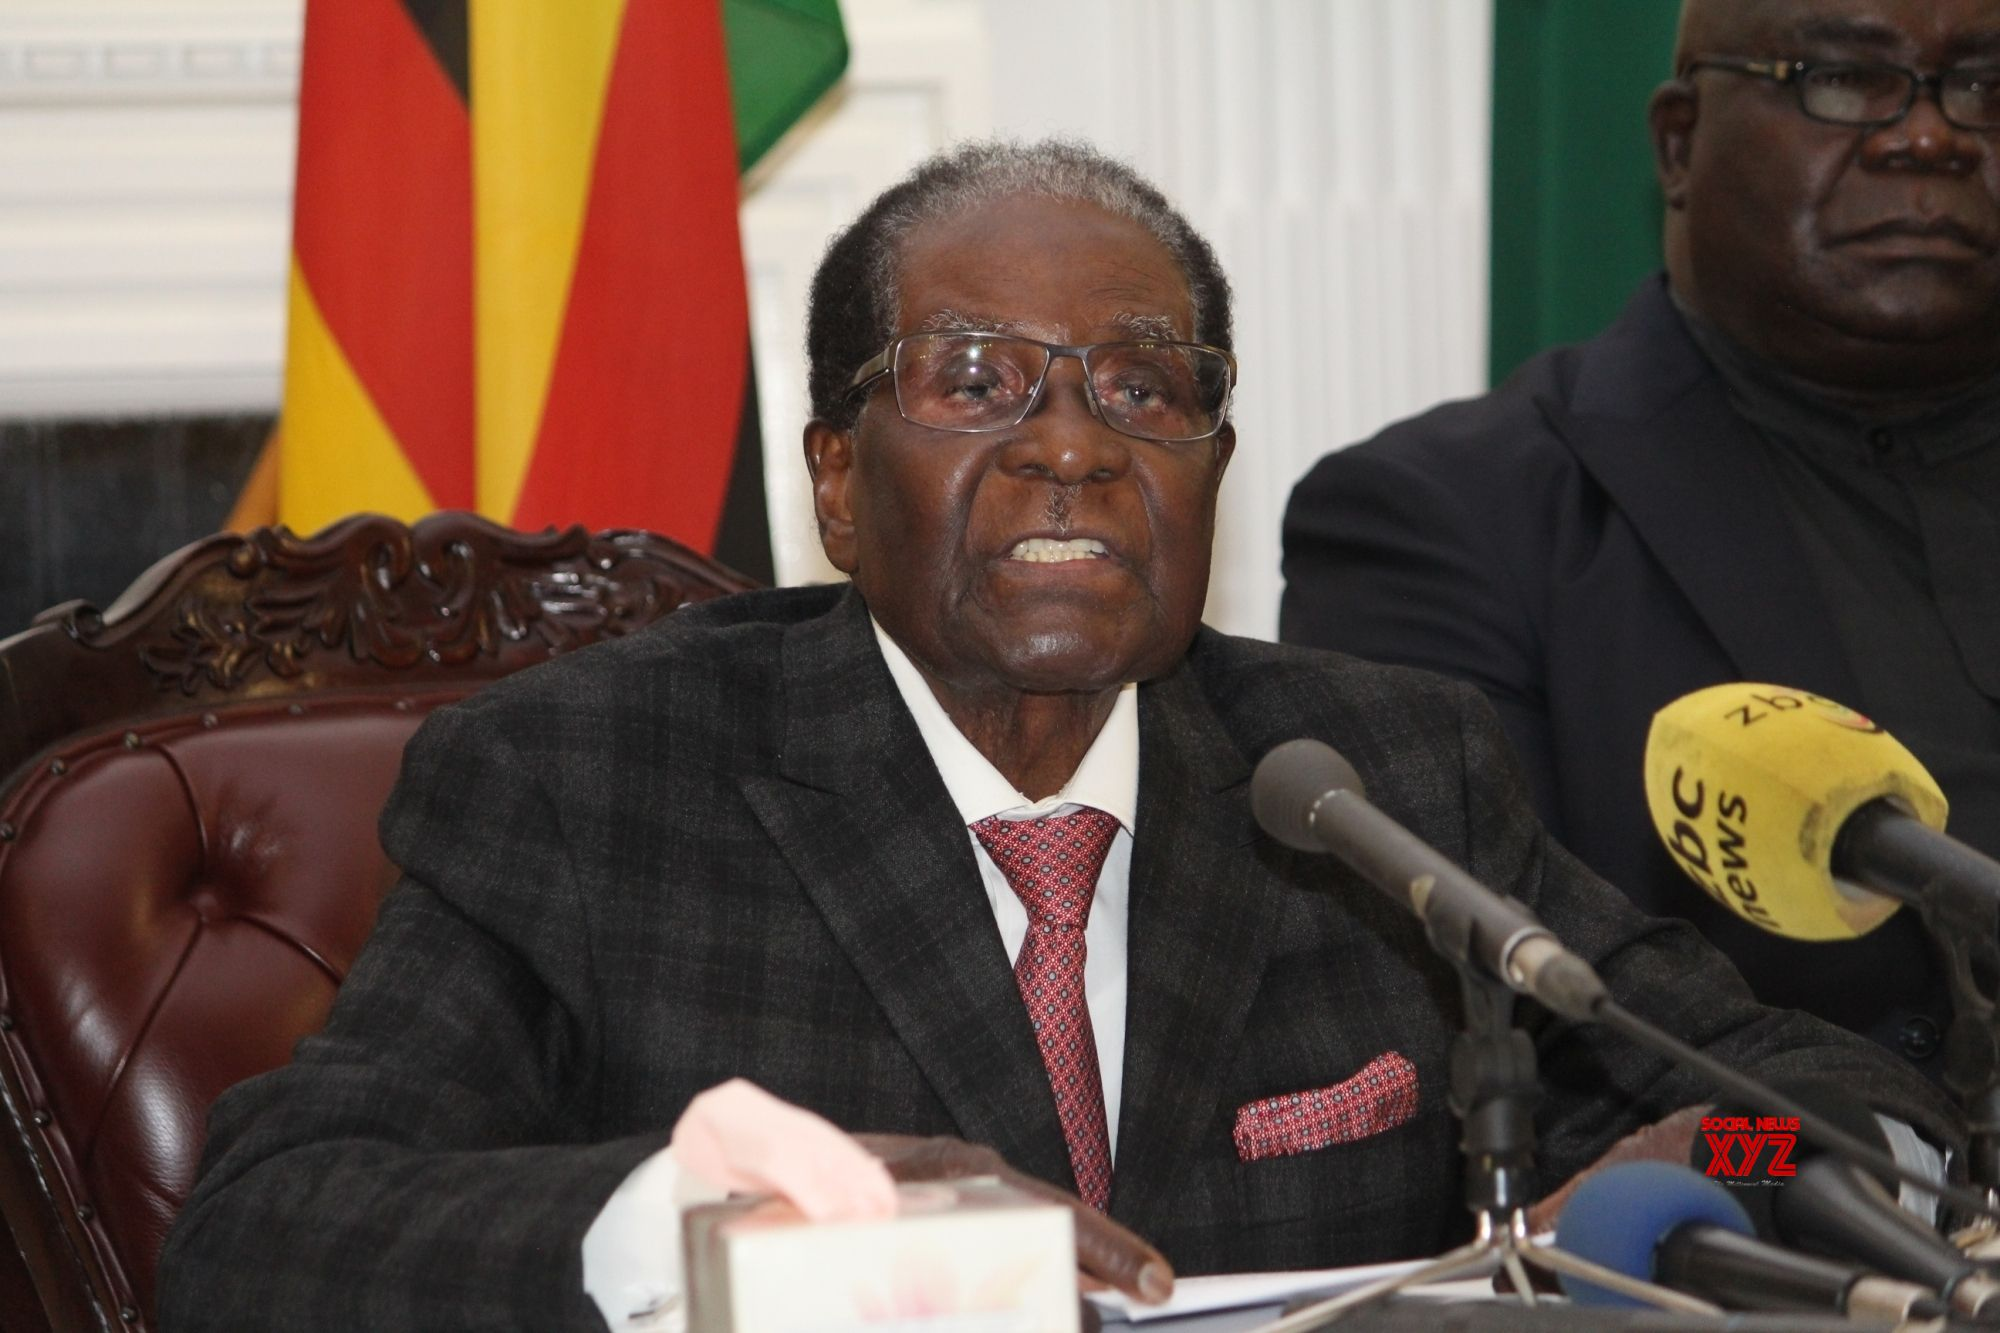 Mugabe to be buried at National Heroes Acre monument